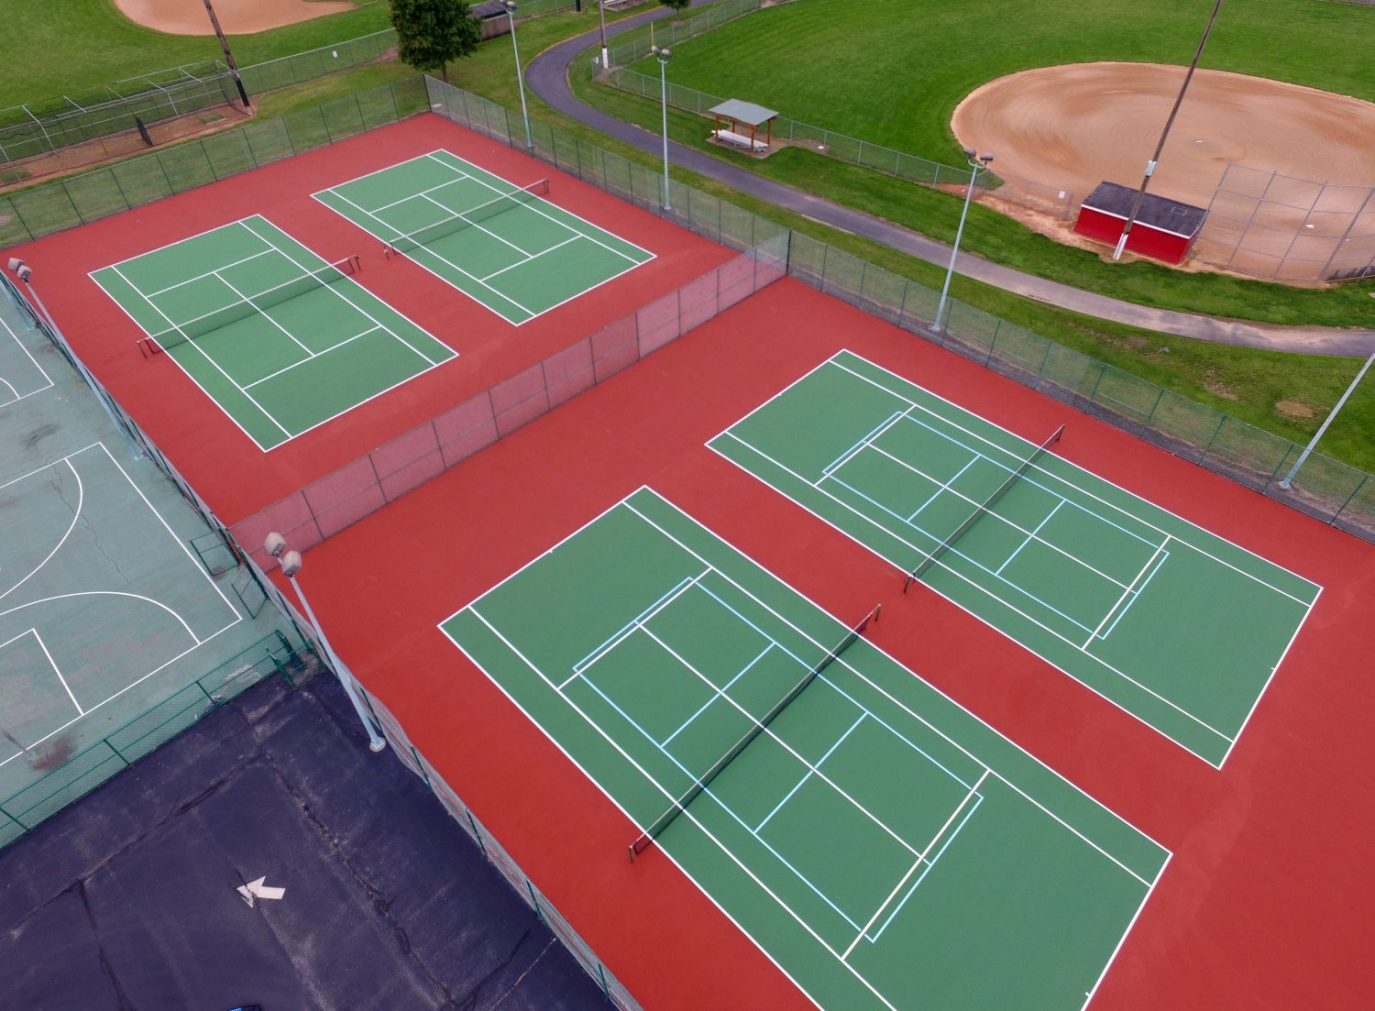 Tennis Court Repair, Resurfacing, & Color Coating